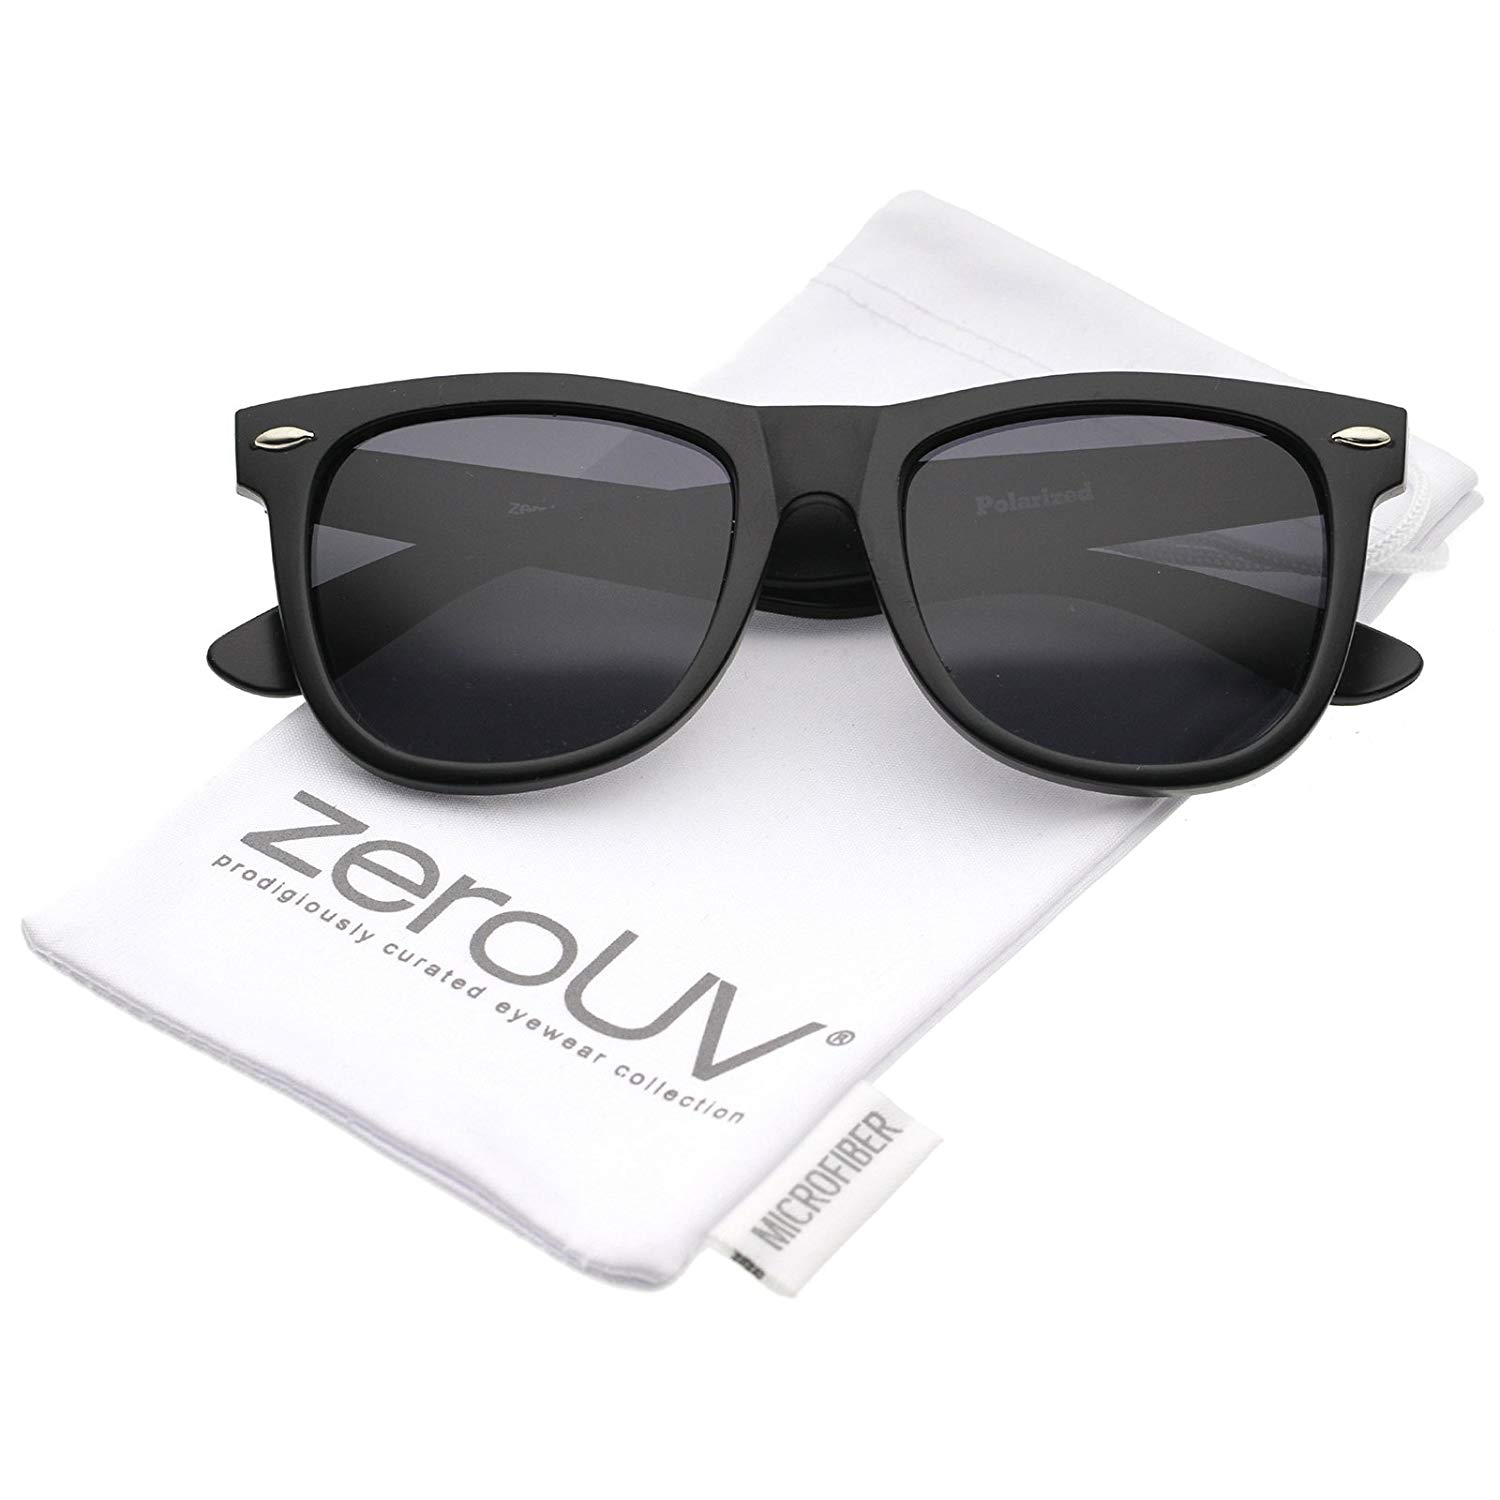 2a7417bff5 Get Quotations · zeroUV - Retro Wide Temple Polarized Lens Square Horn  Rimmed Sunglasses 55mm